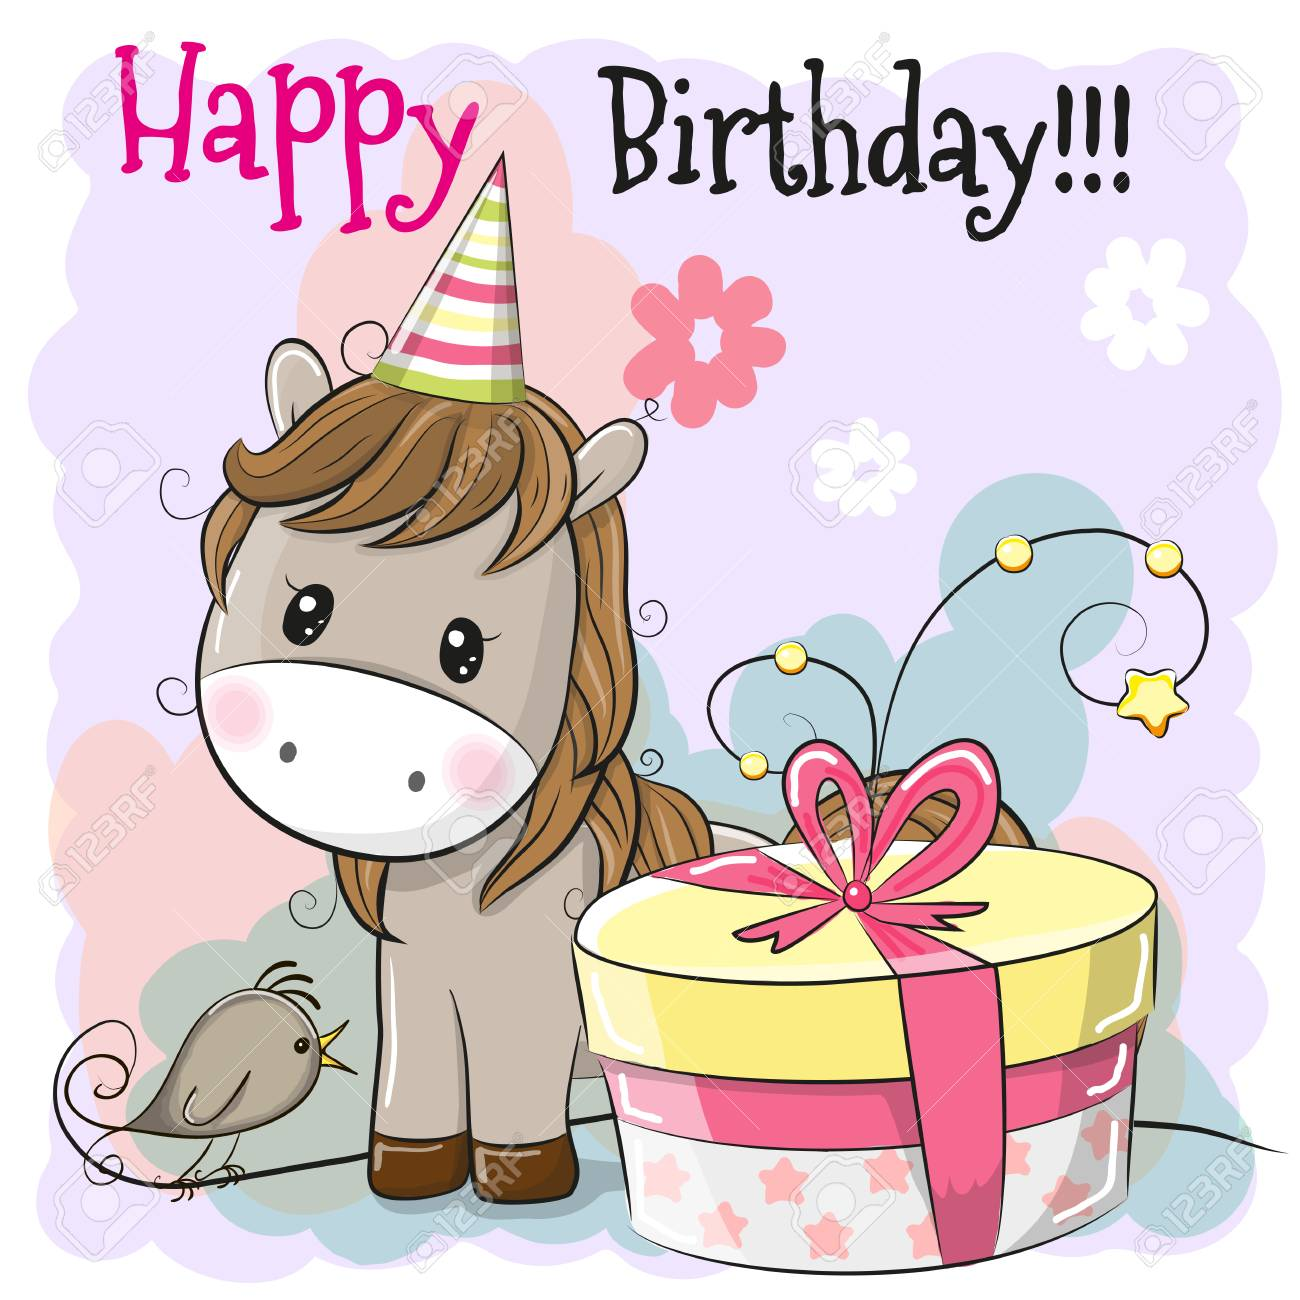 Designs HORSE Happy BIRTHDAY CARD By Hannah Dale CHESTNUT Funny Birthday Card Little Horse From CardFool Cards